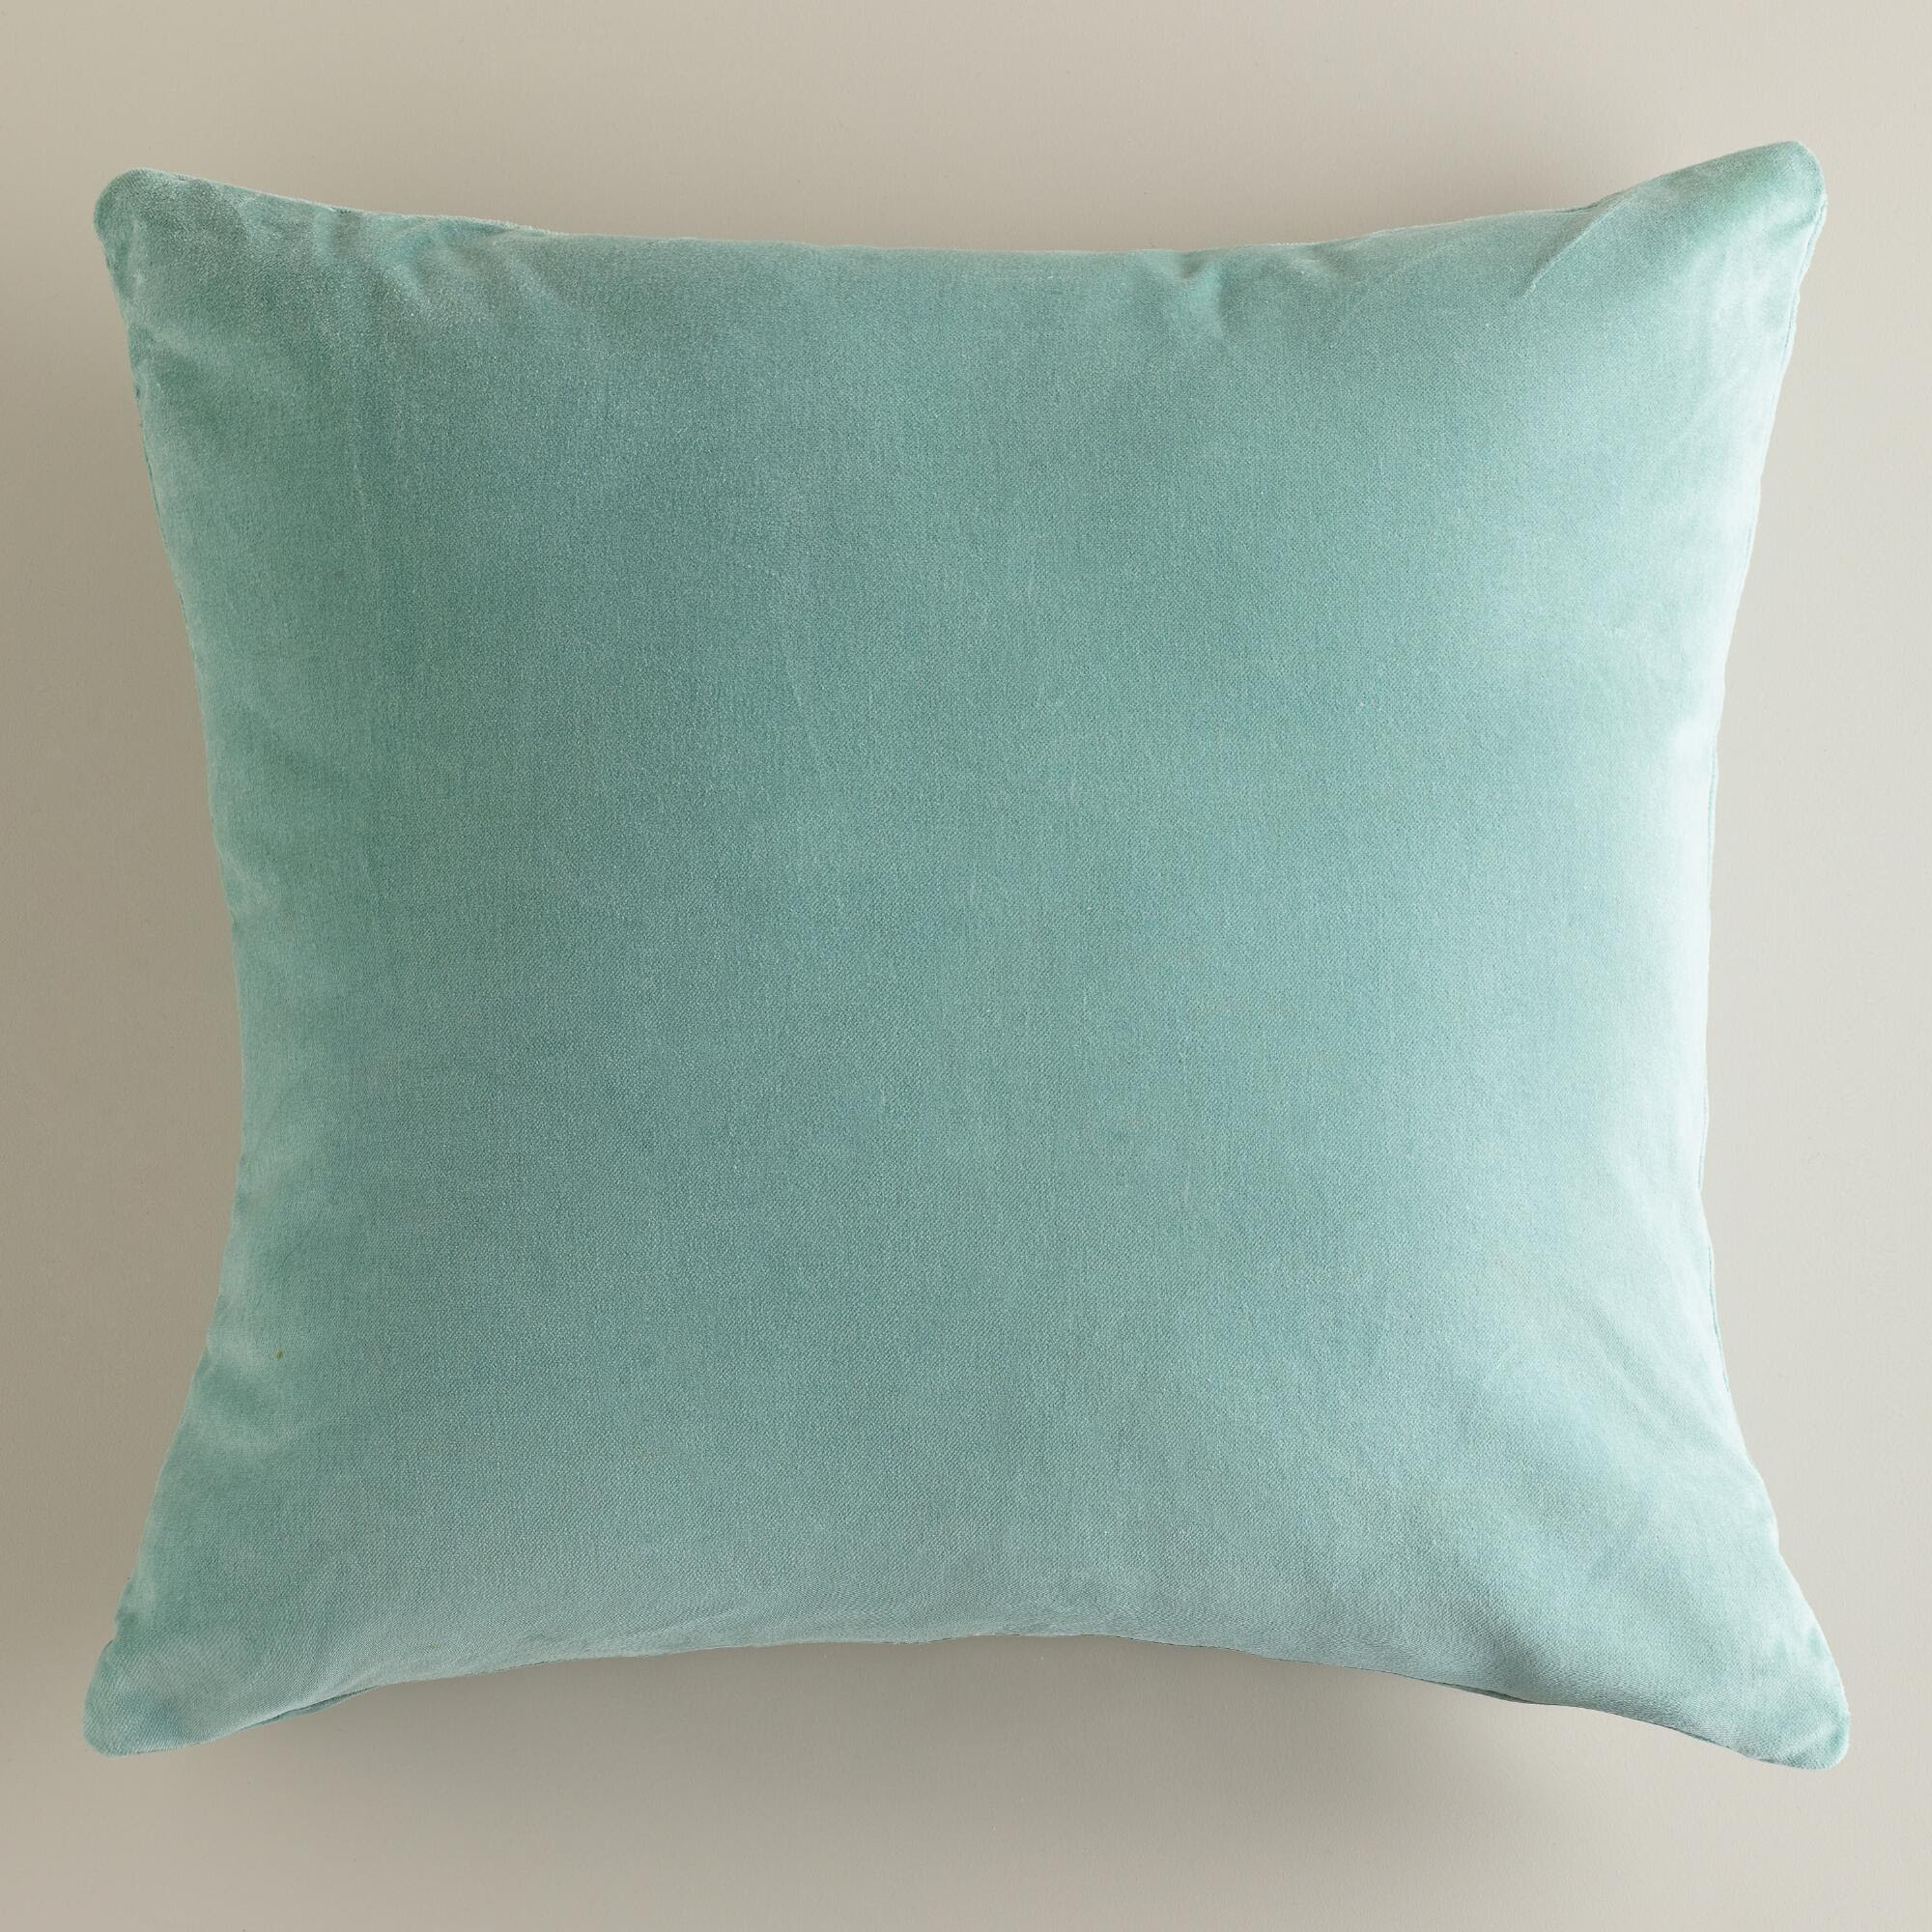 Pillows, Decorative Throws & Affordable Outdoor Cushions | World